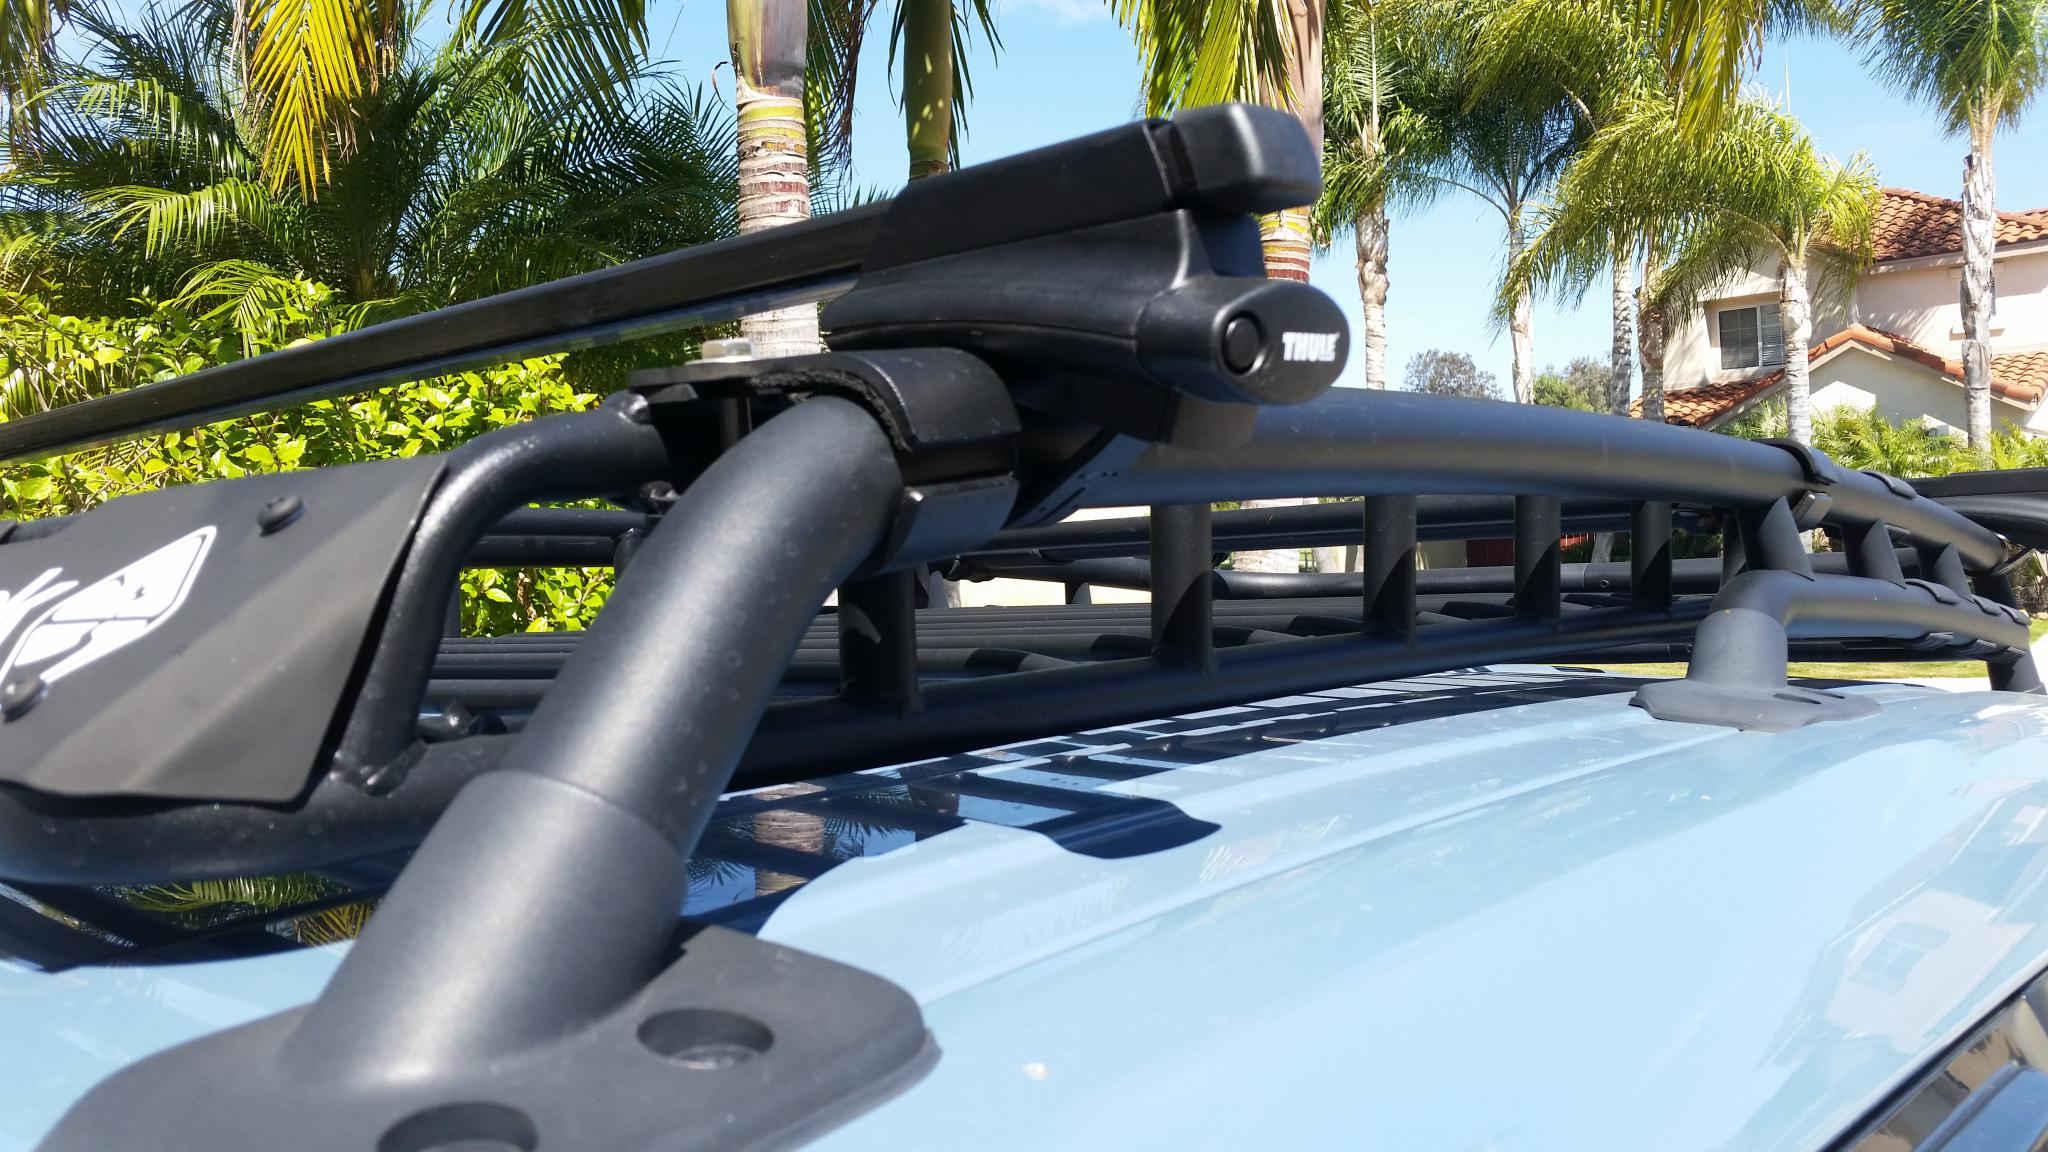 Click image for larger version Name 20160617_153236.jpg Views 1032 Size 360.2 ... & Roof Top Tent for OEM Rack - Toyota FJ Cruiser Forum